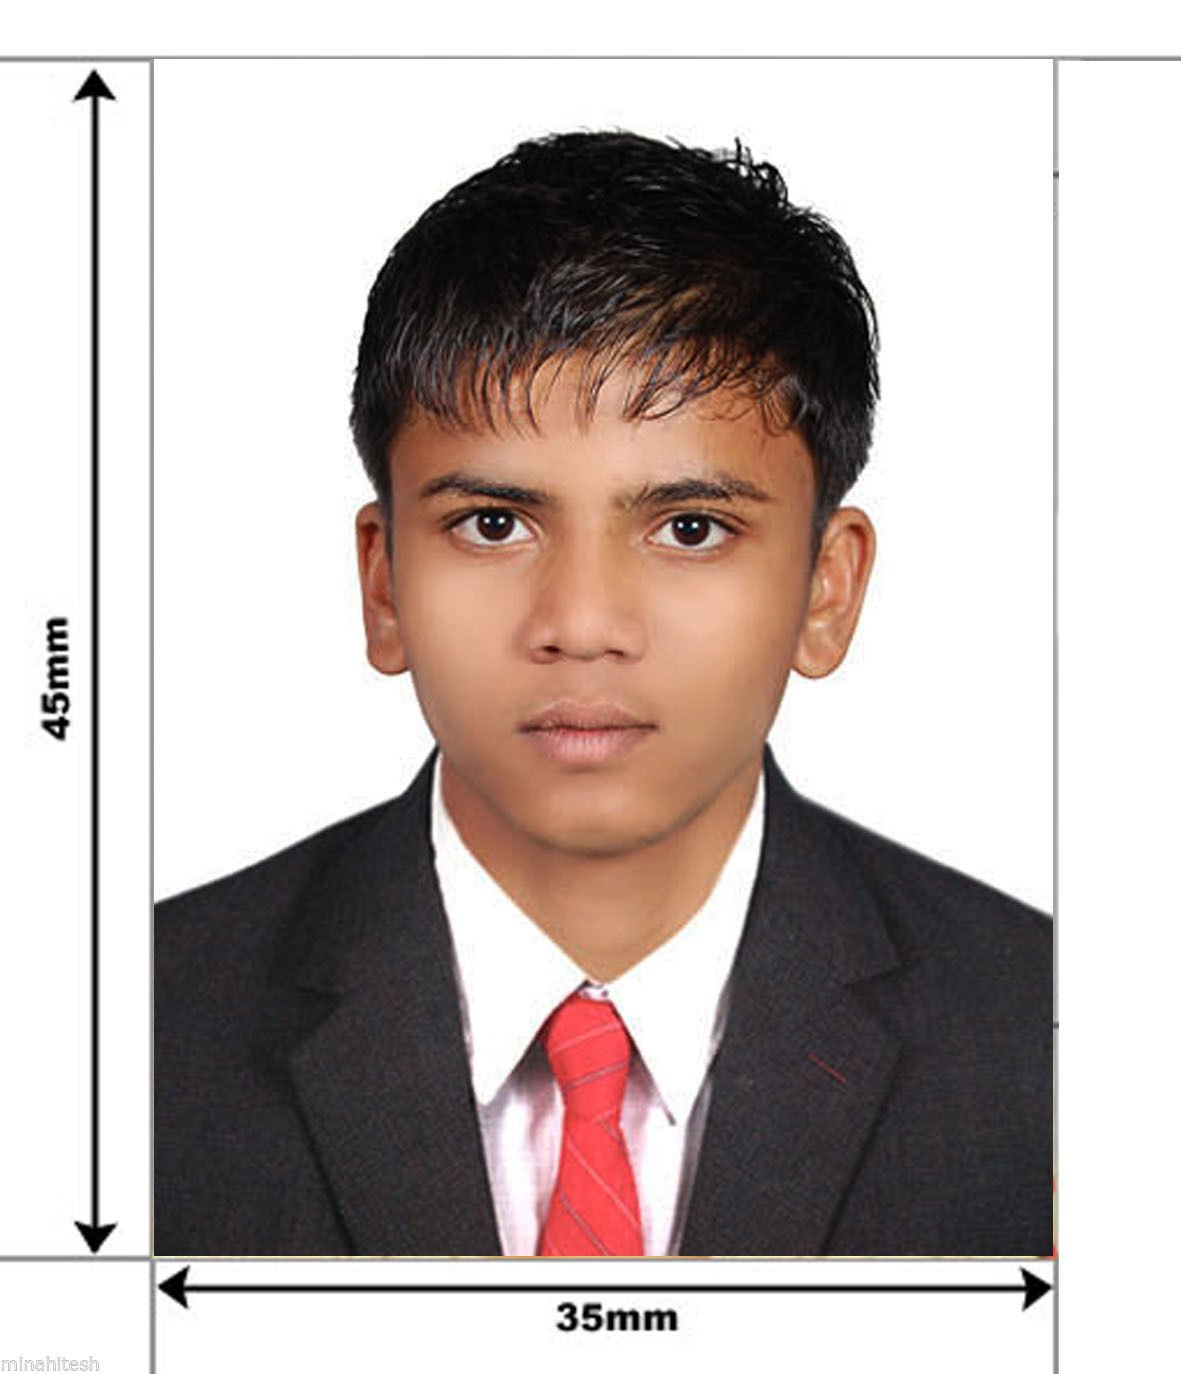 120 Passport Size Photo 35mm X 45mm Or 3 5cm X 4 5cm Glossy Paper Best Quality Passport Photo Amazon In Office Products